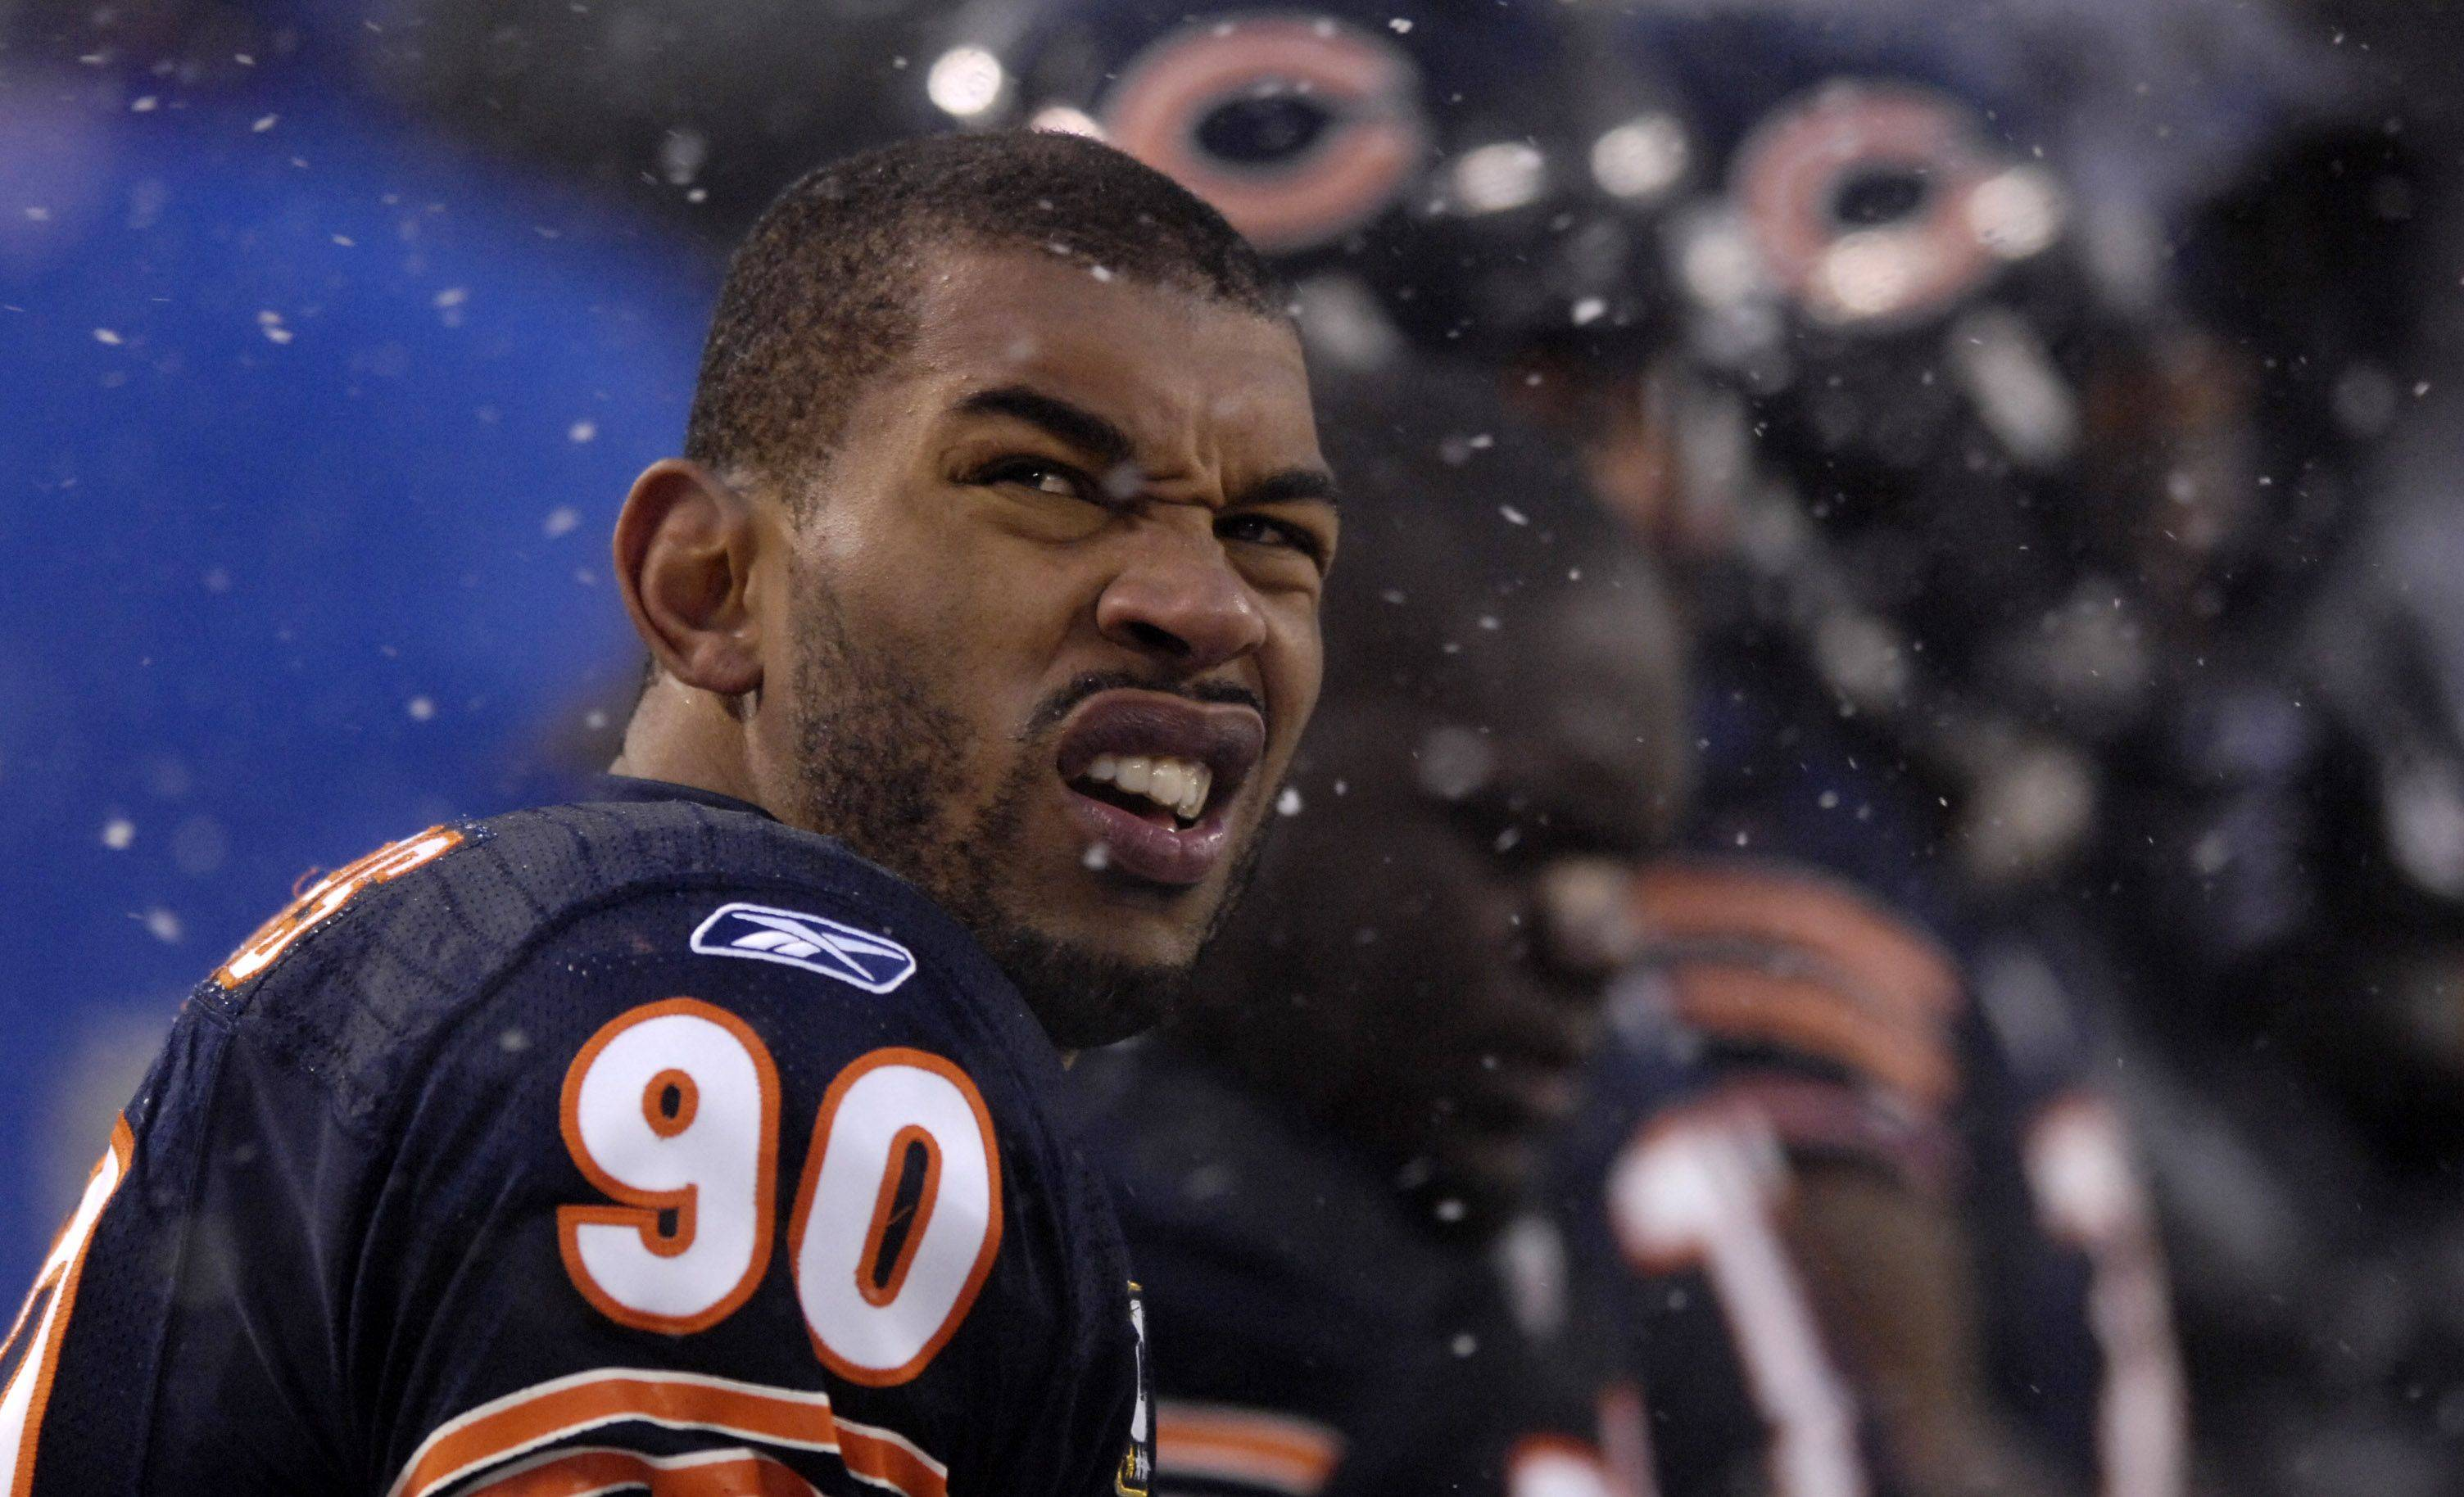 Chicago Bears defensive end Julius Peppers sits on the bench during Sunday's game.